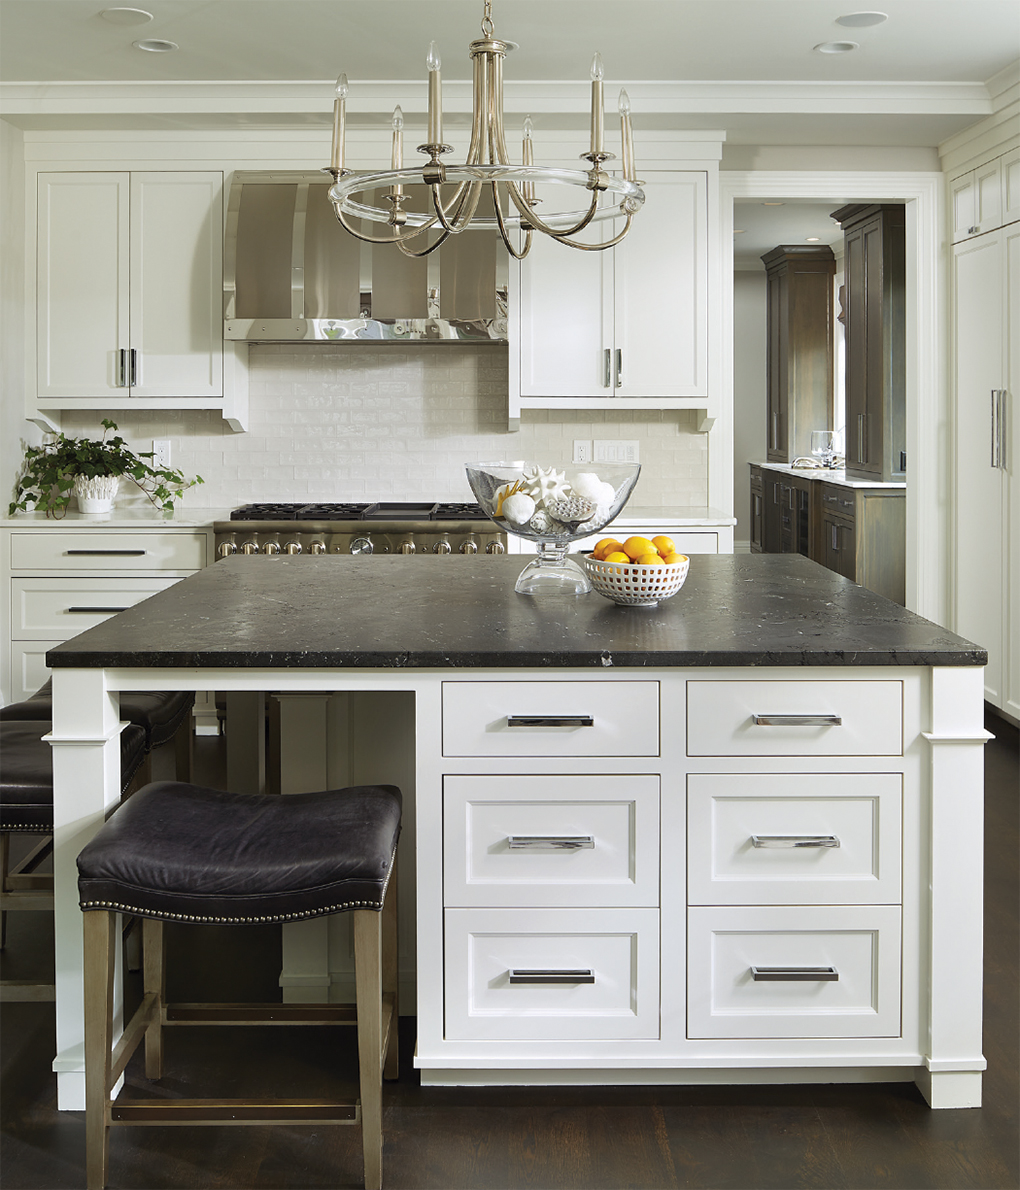 A kitchen island with a black quartzite top in an all white kitchen.